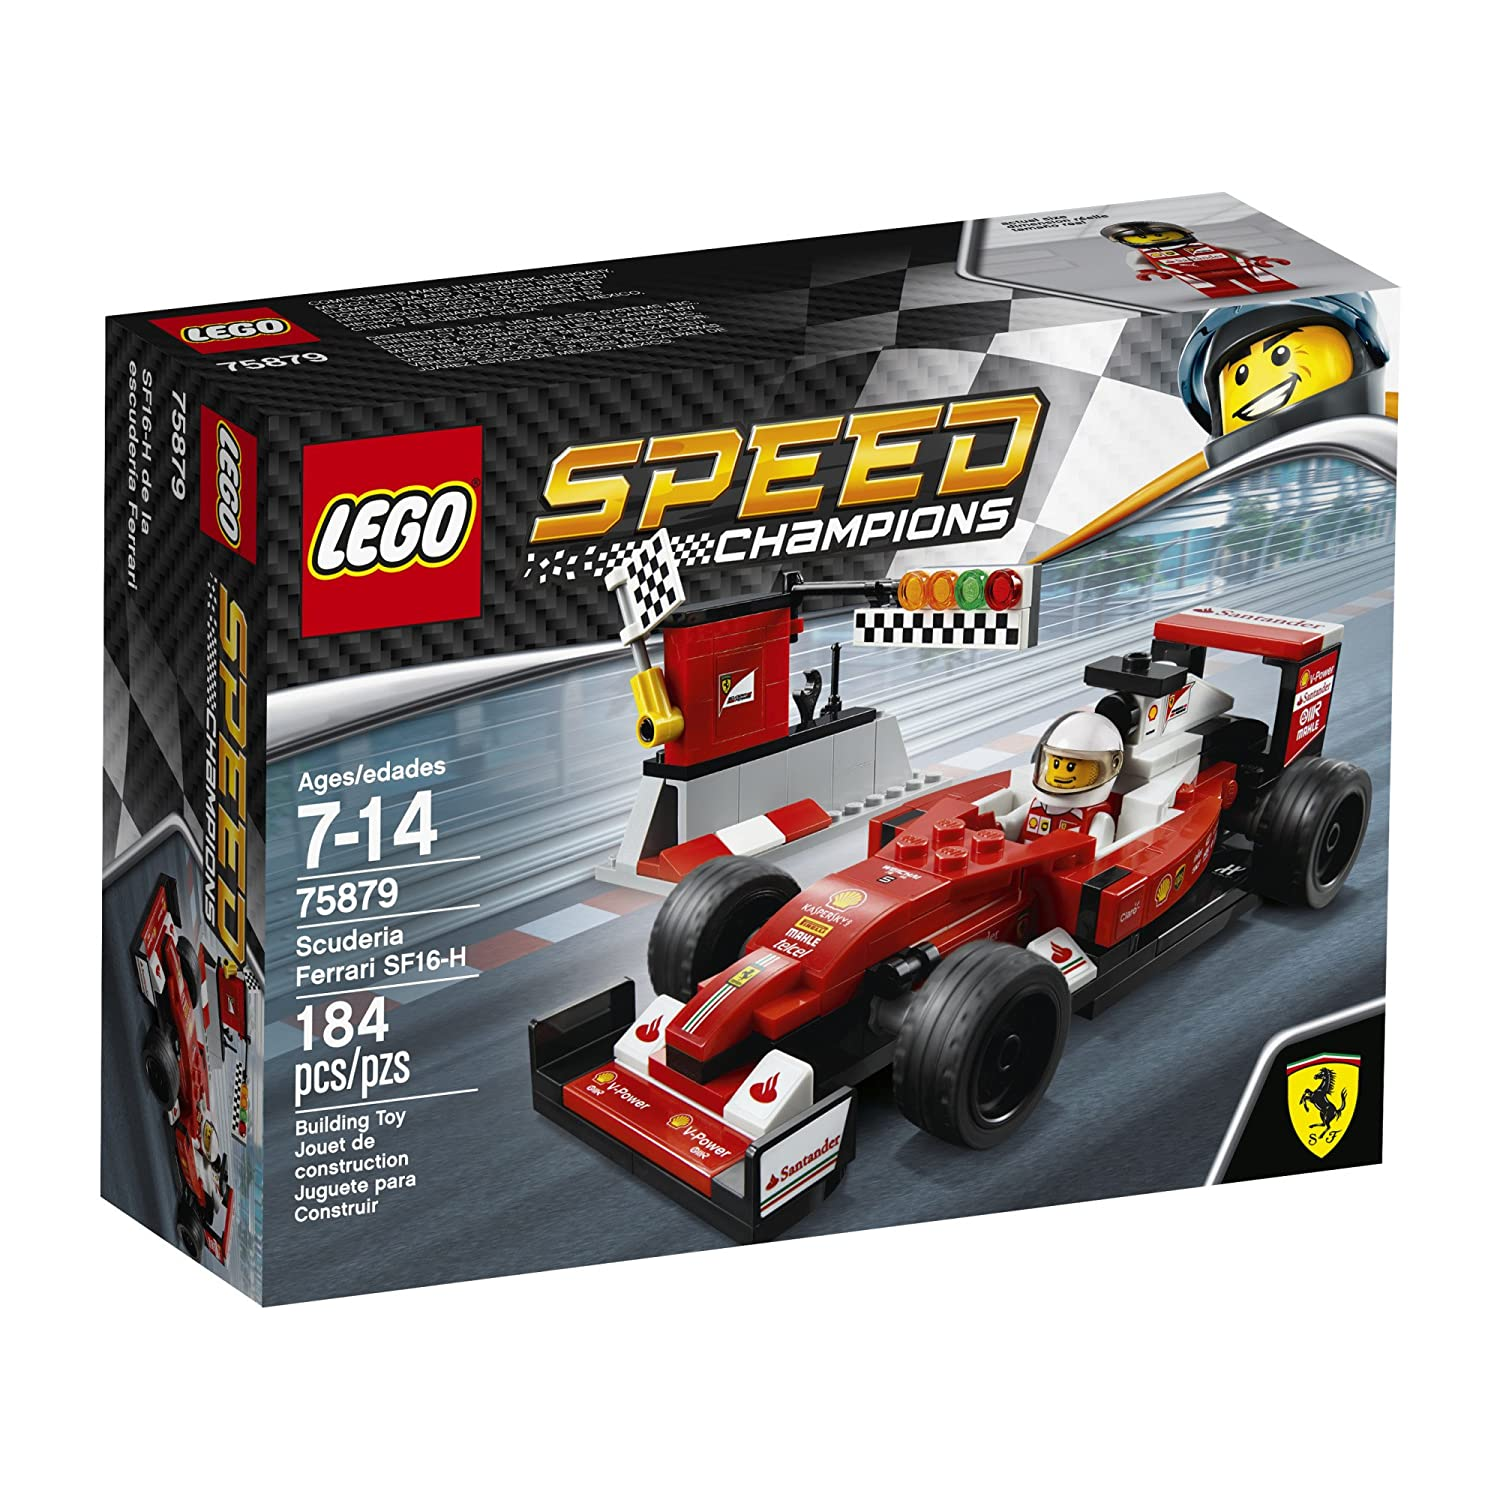 Top 9 Best LEGO Ferrari Sets Reviews in 2020 8